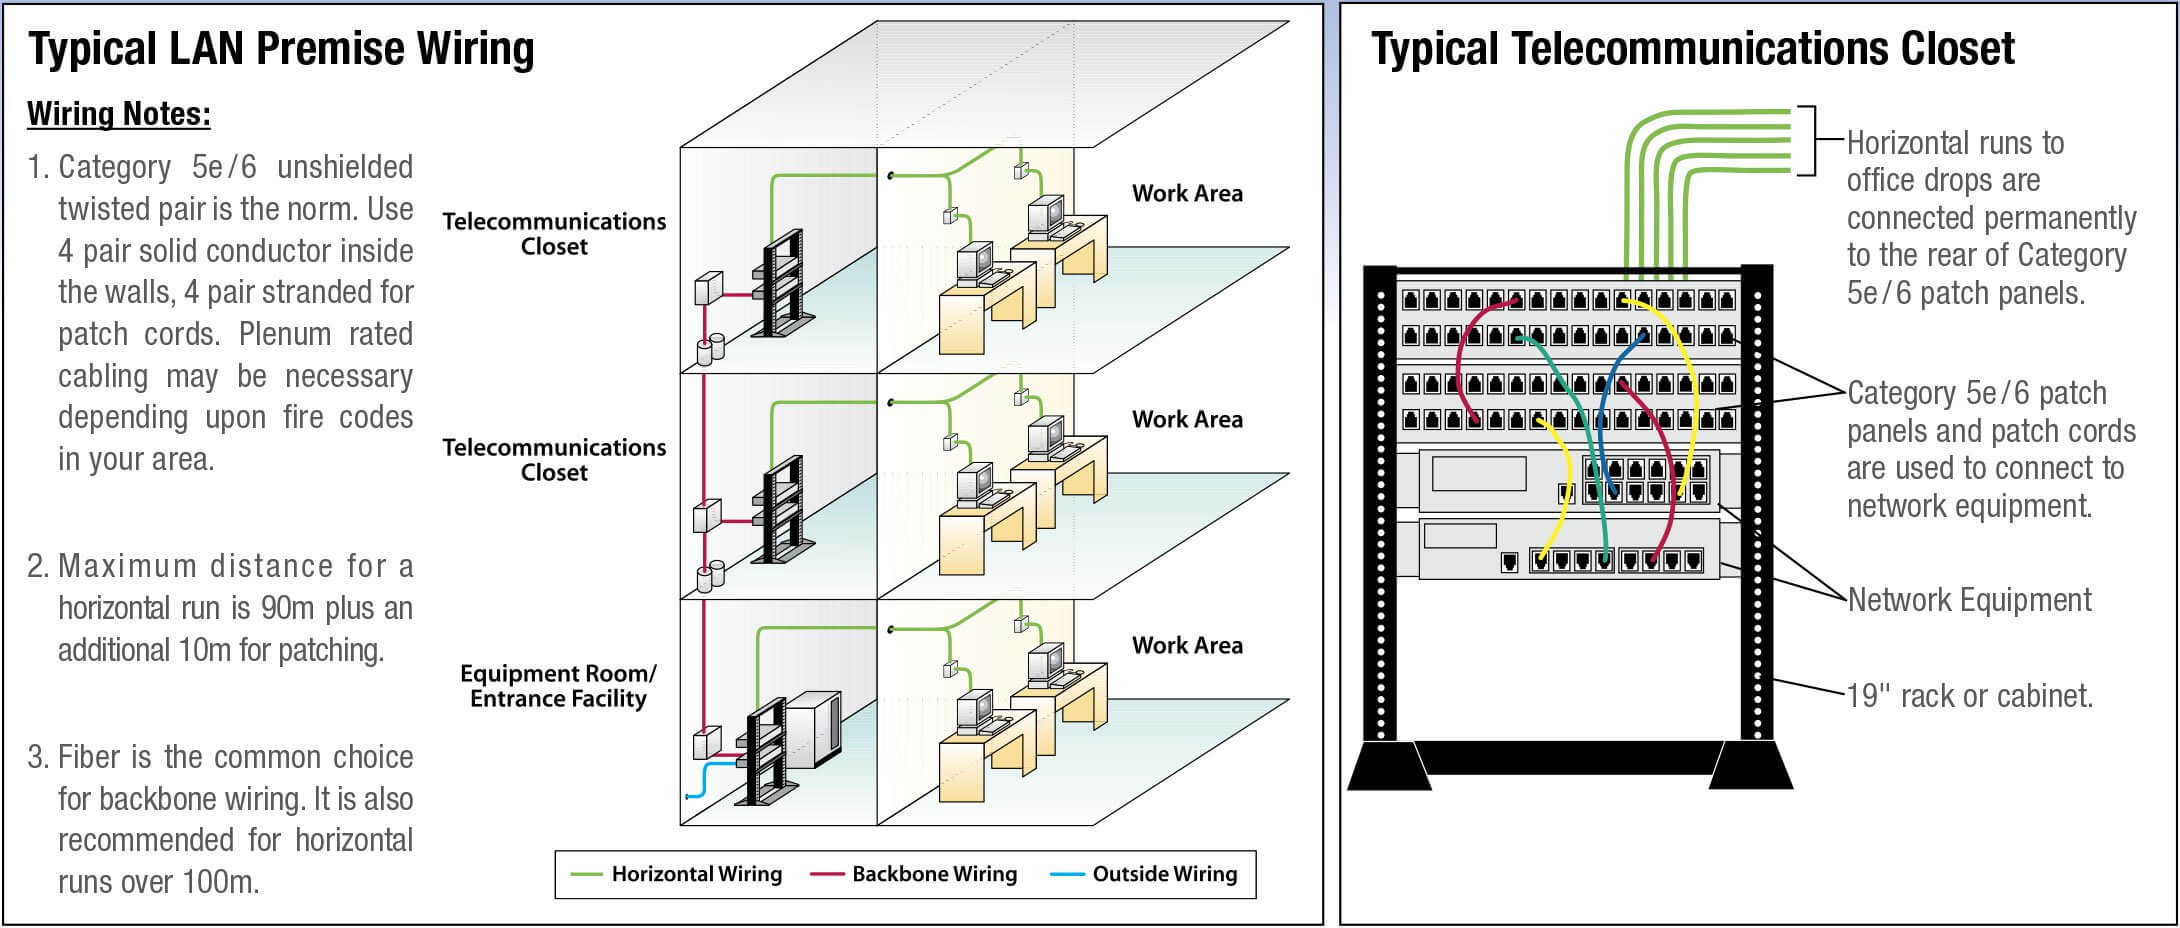 Network Wiring Diagram Room Guide And Troubleshooting Of Ethernet House Rj45 Cable Assemblies L Com Rh Cat6a Local Area